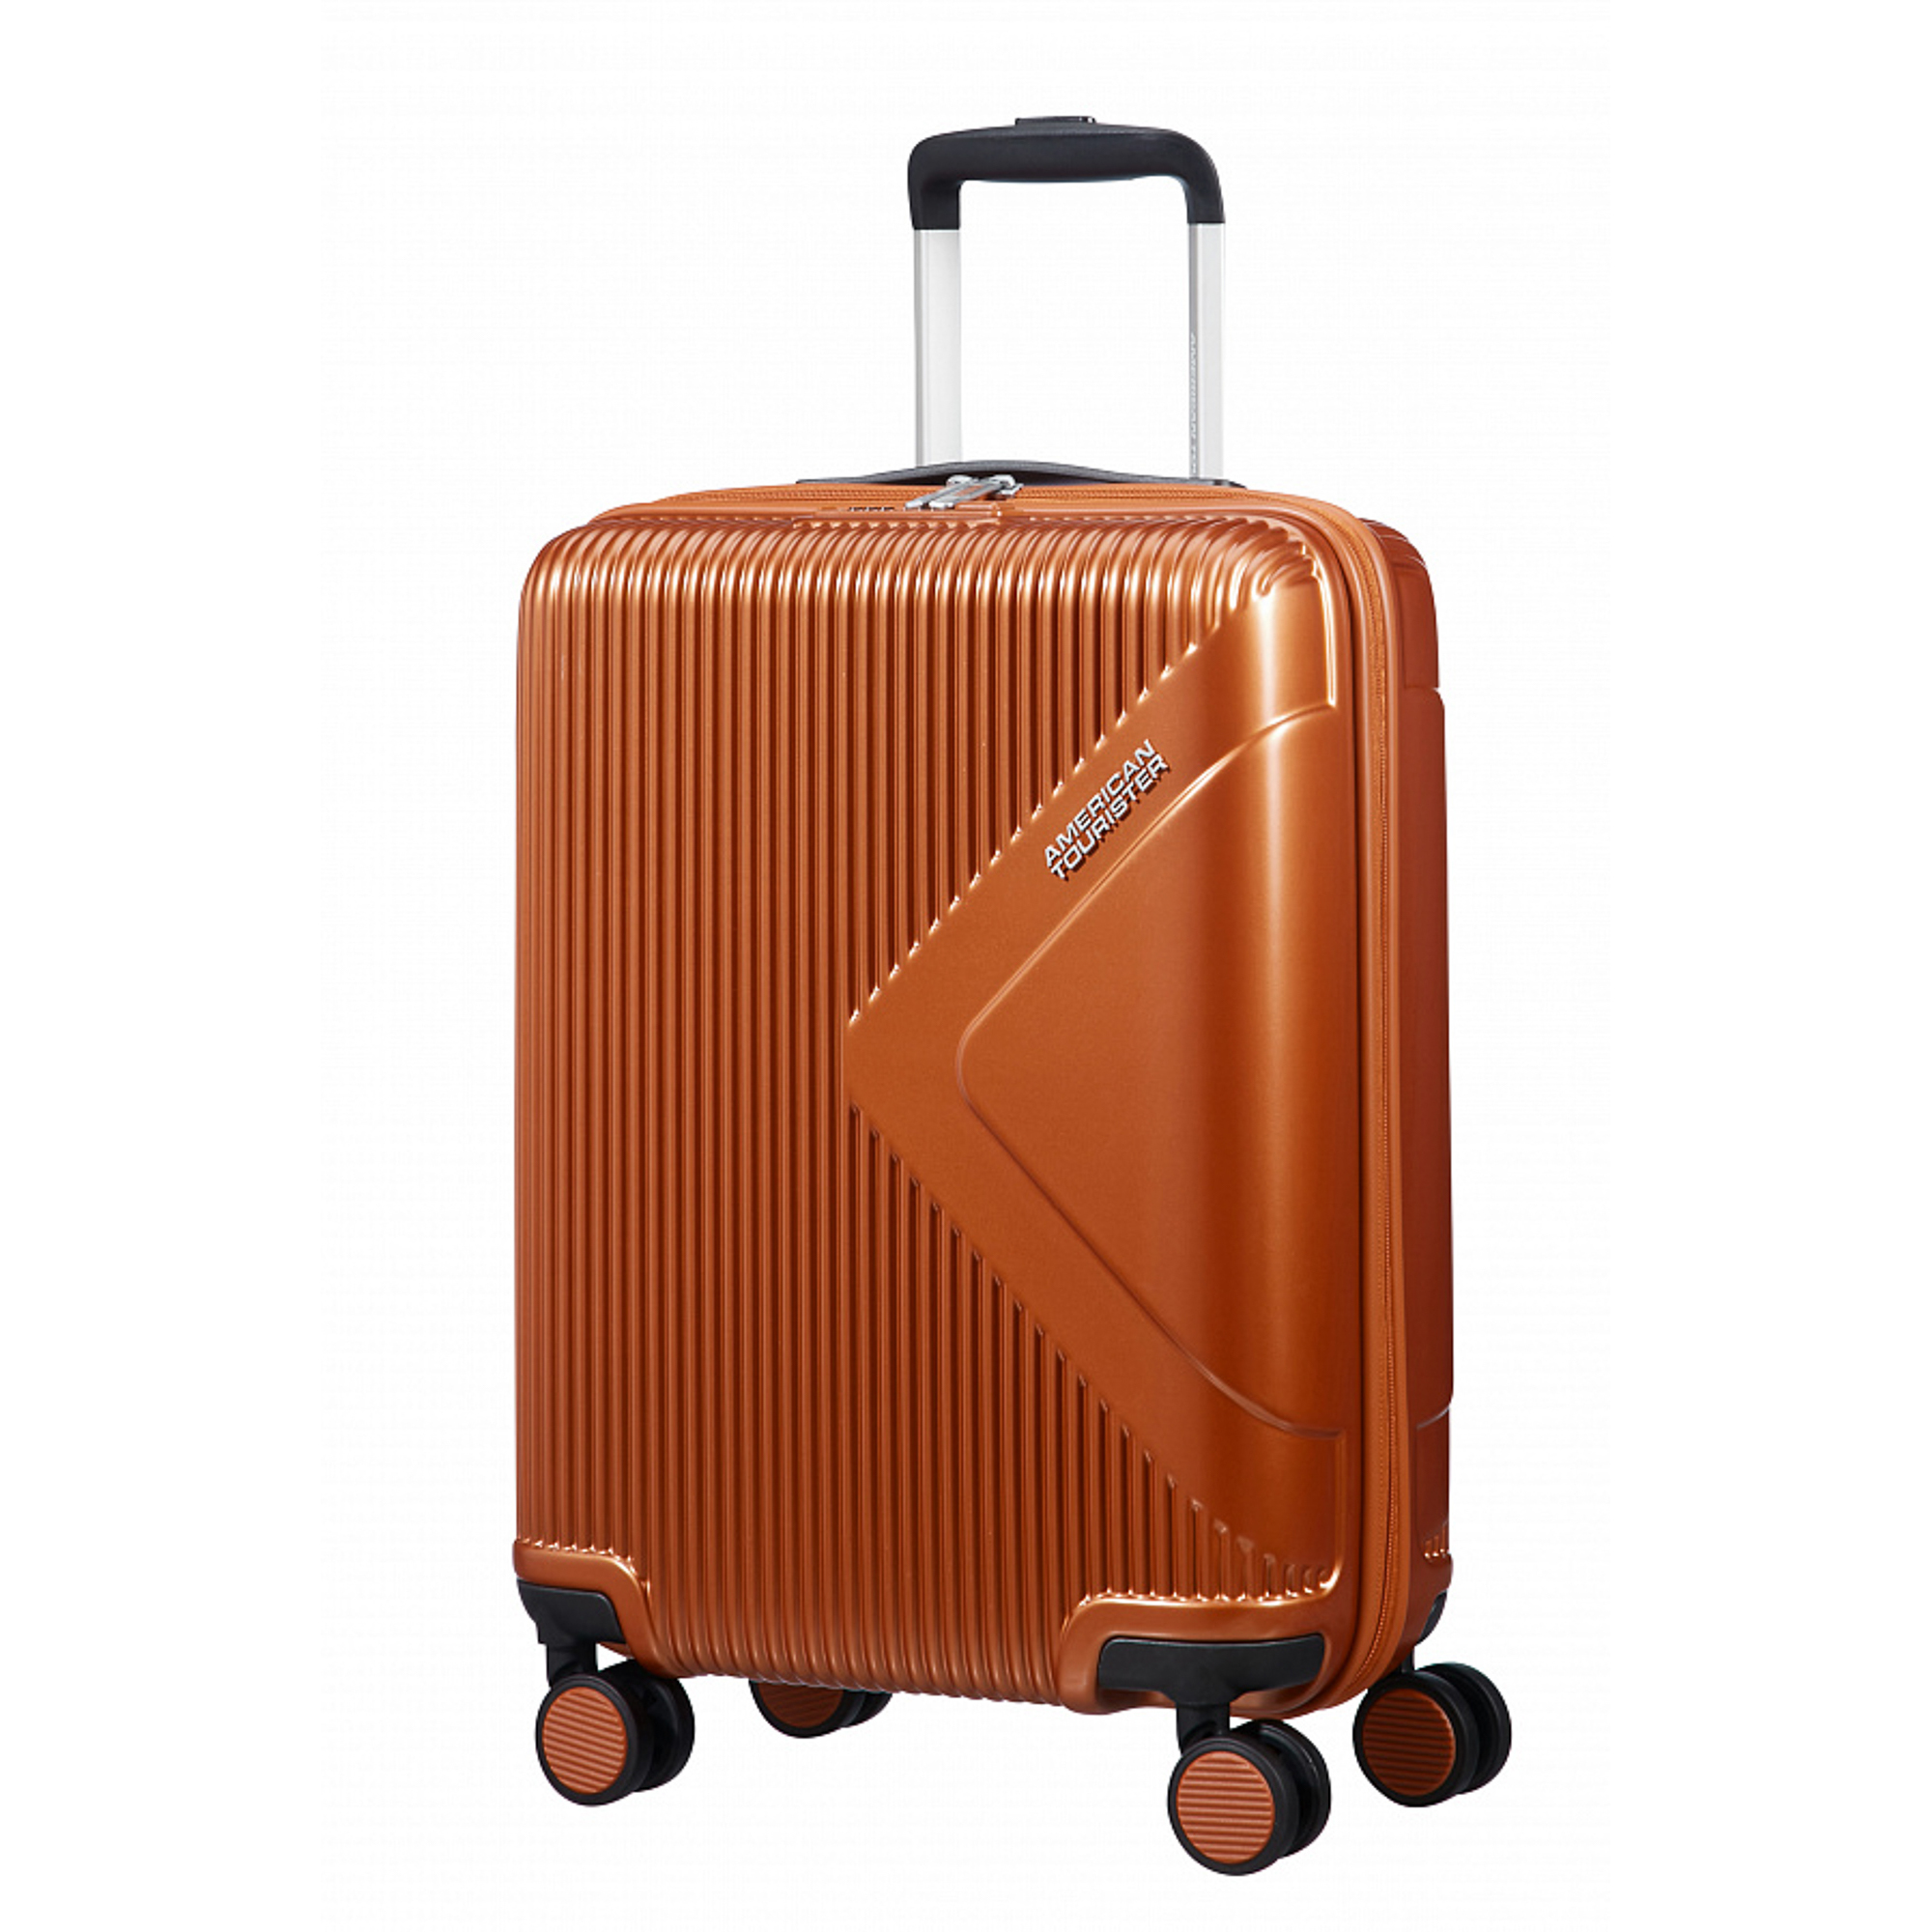 Чемодан American Tourister Modern dream медный S